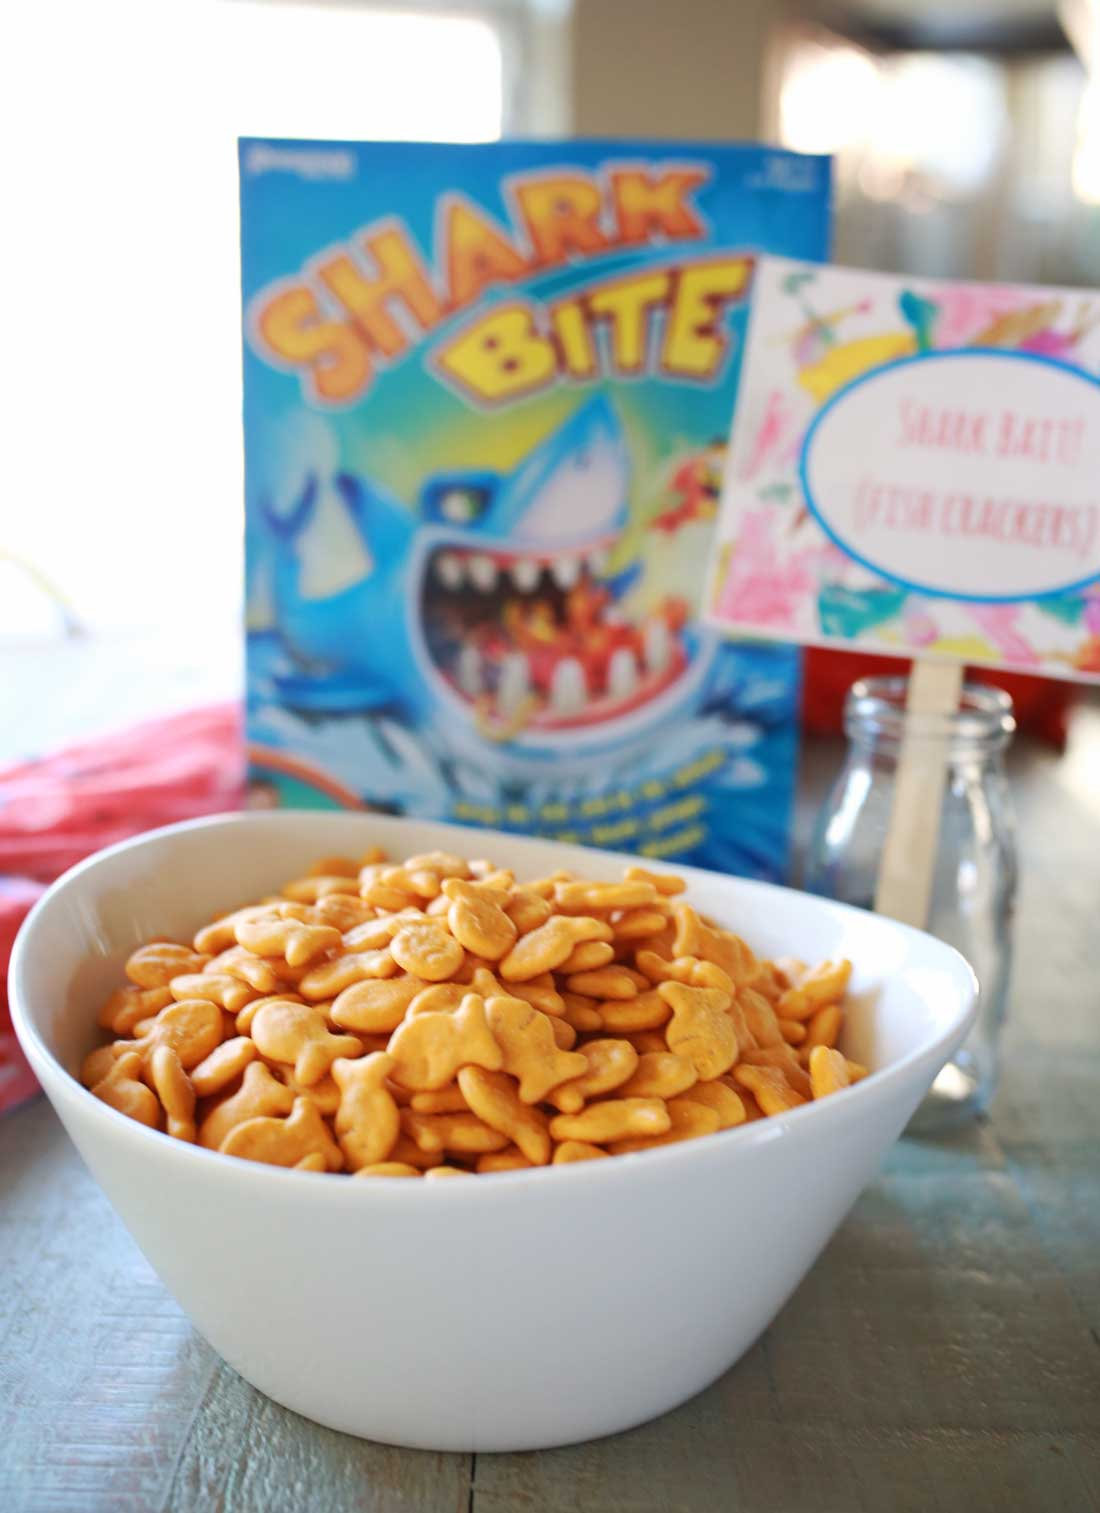 Fun games and foods for kids!